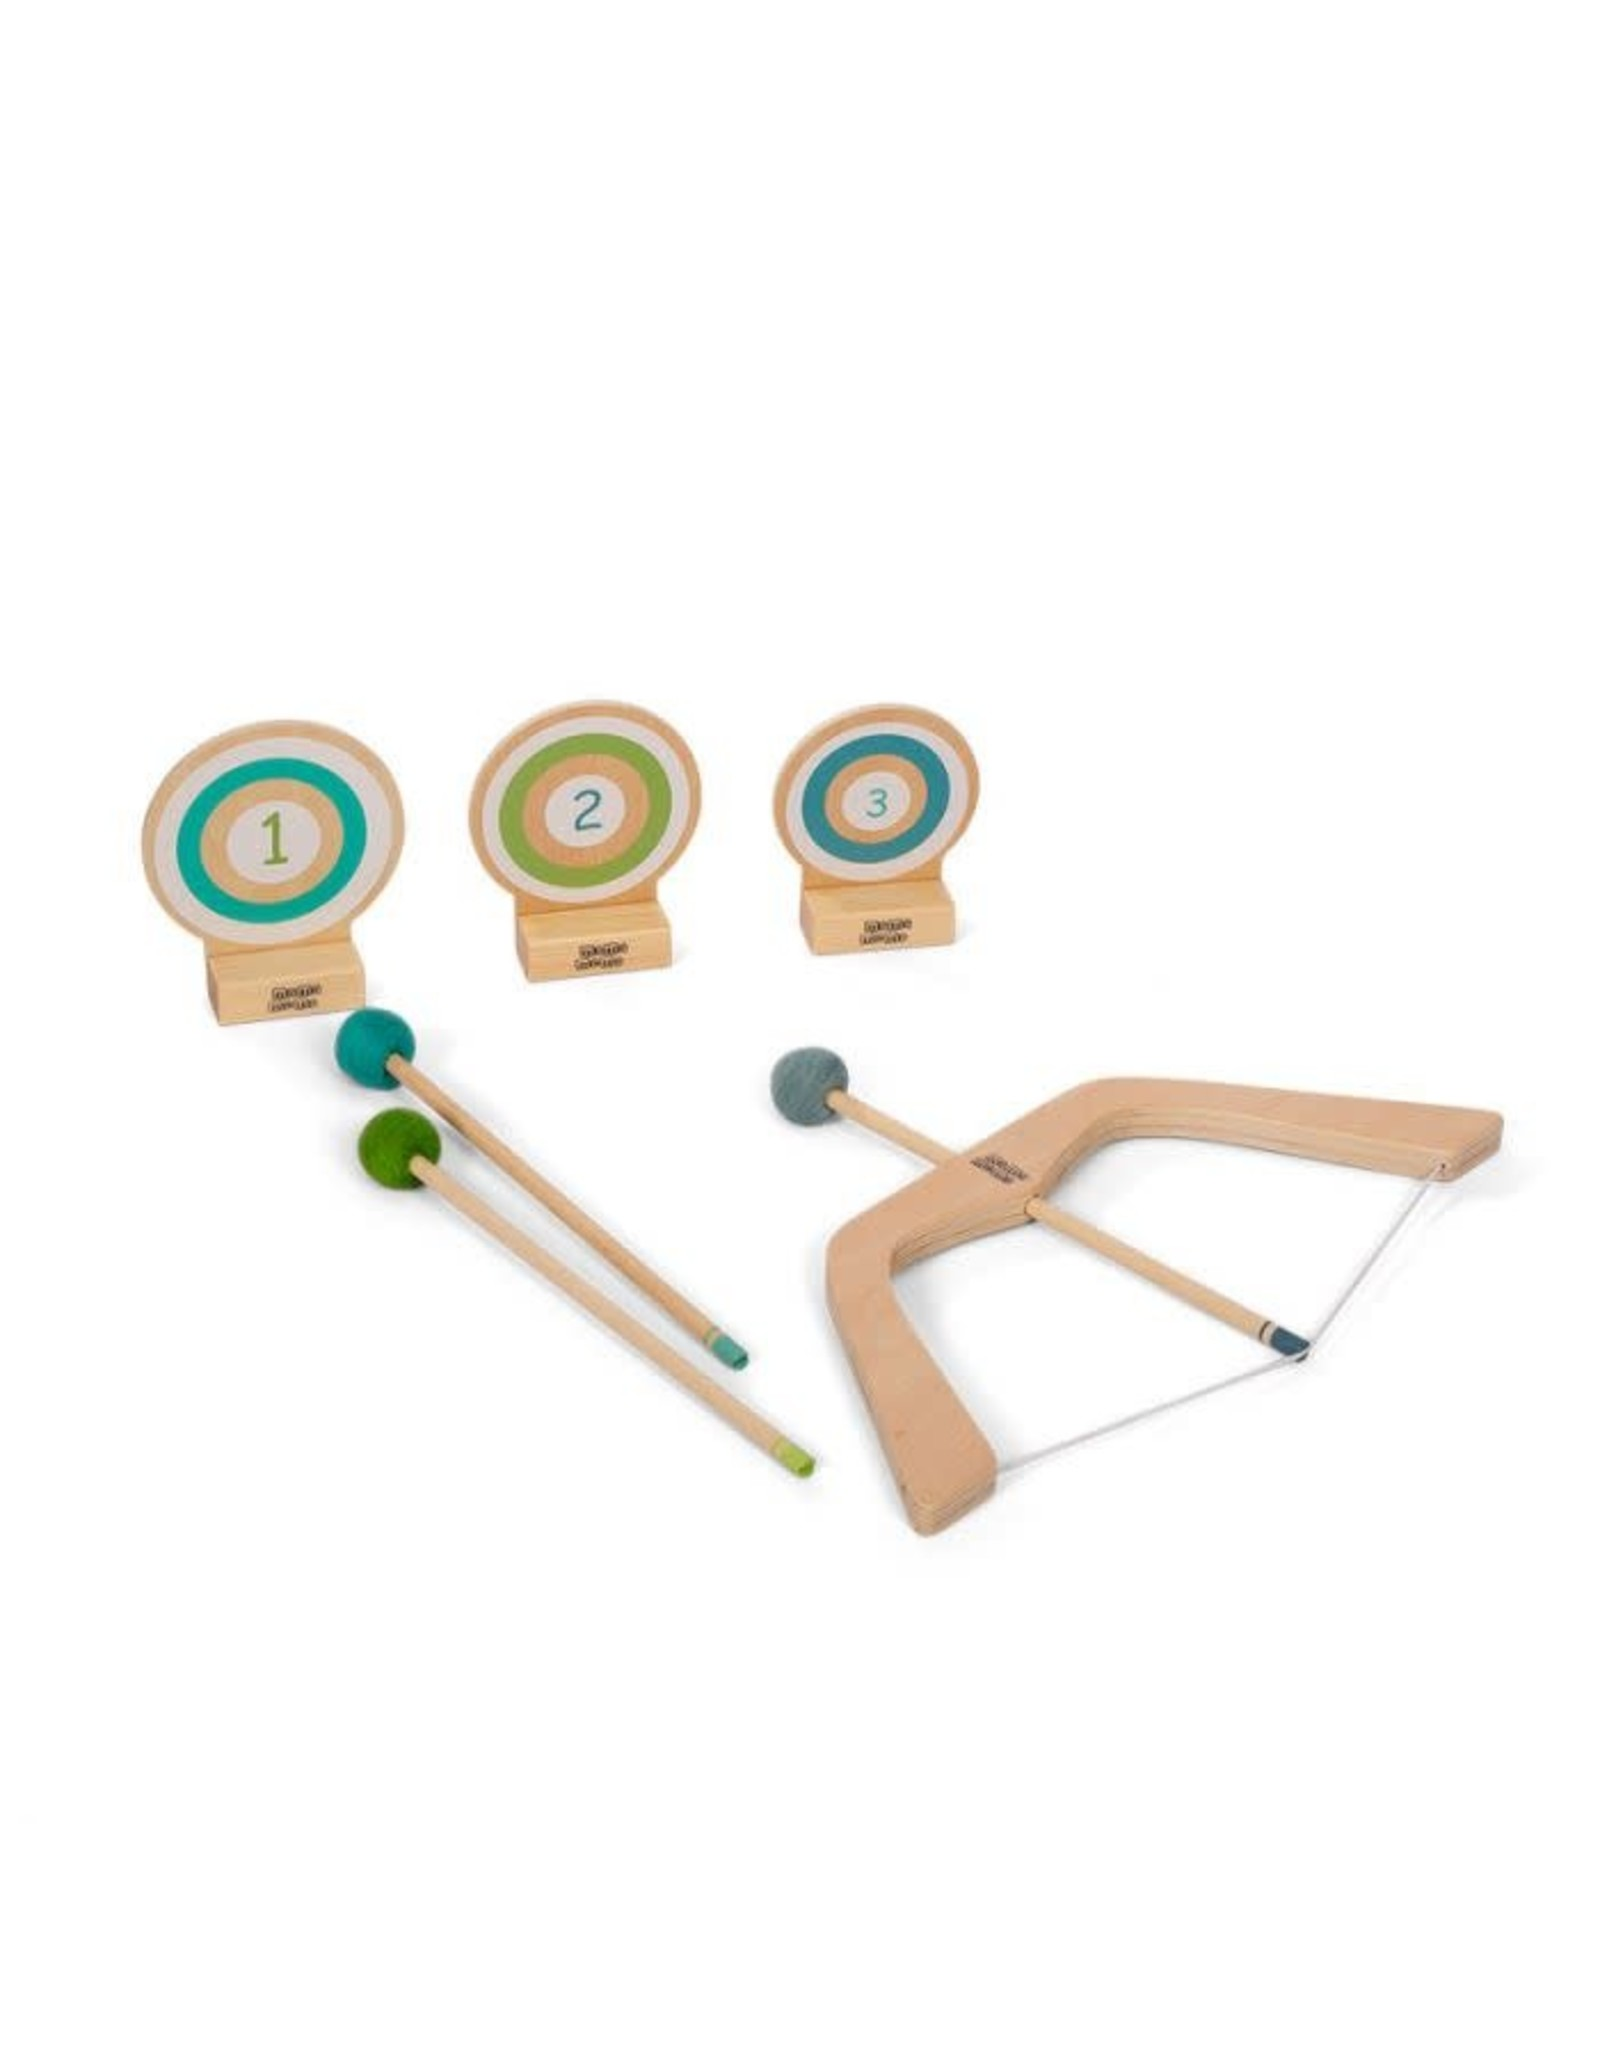 Mamamemo Bow and Arrow Set